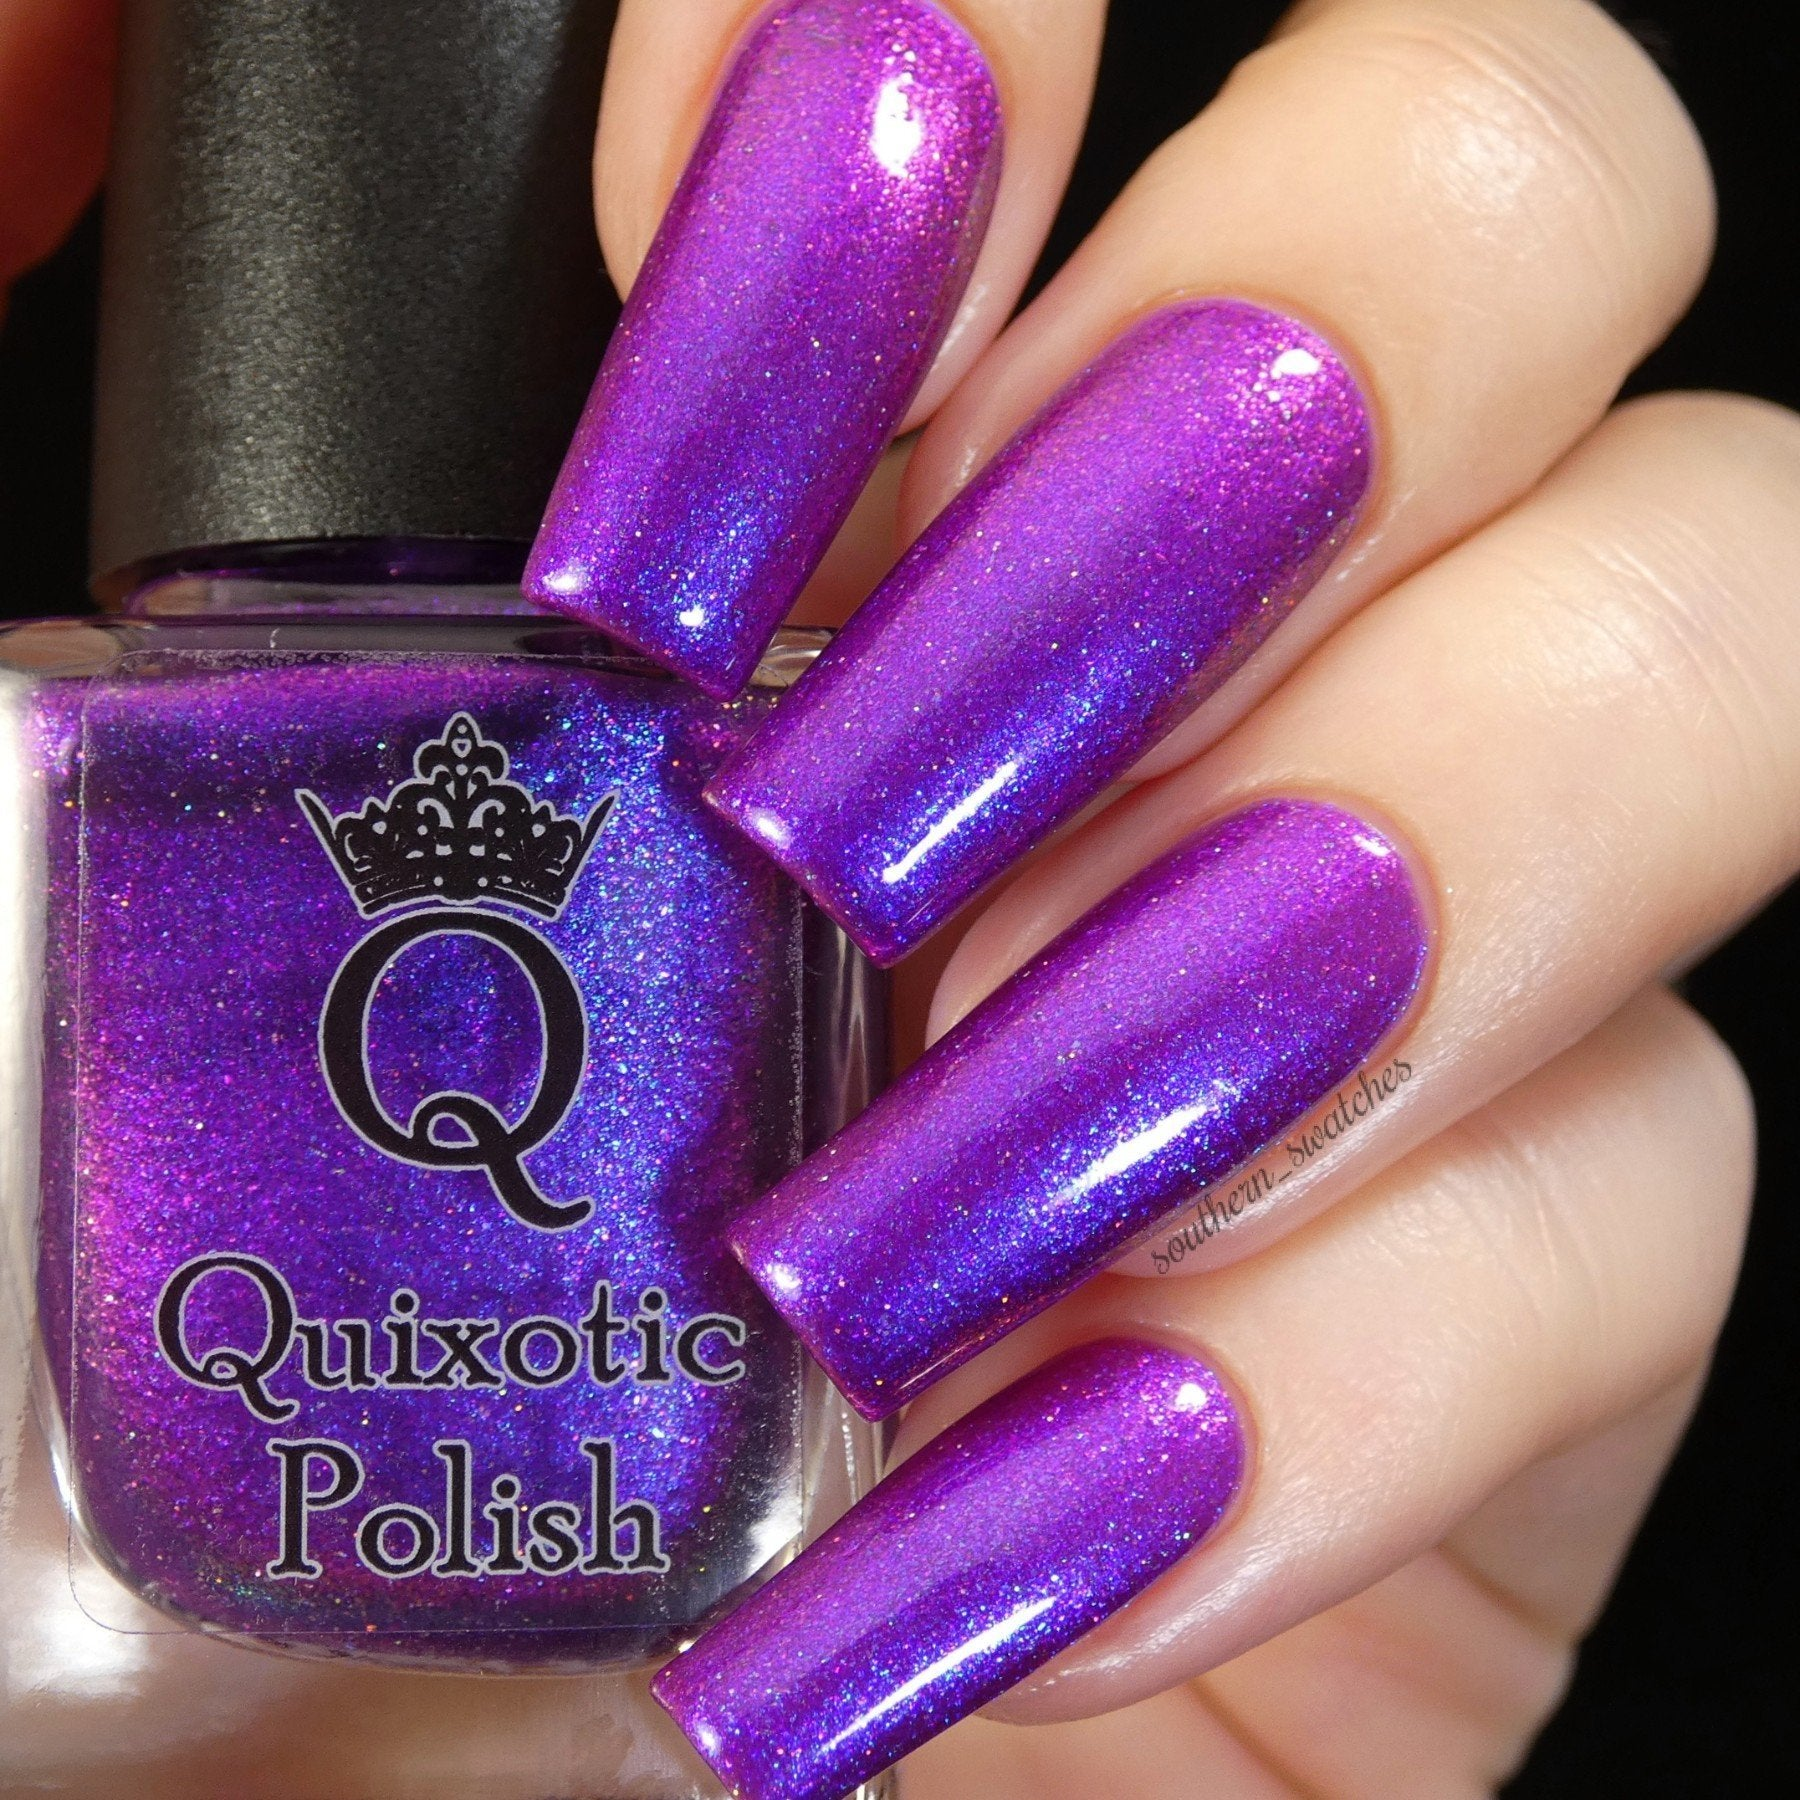 *PRE-SALE* Quixotic Polish - Pixie Stick